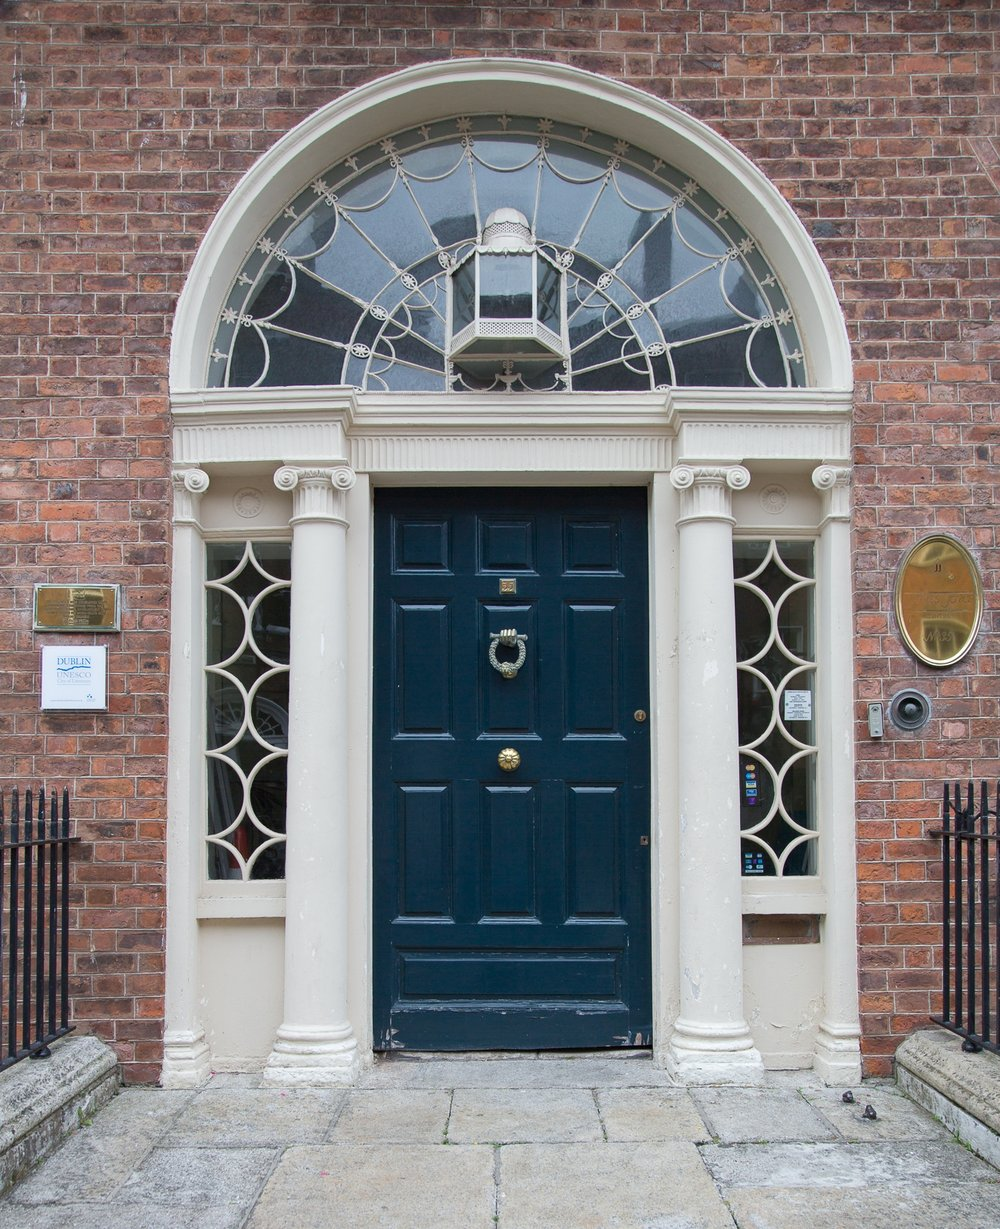 The James Joyce Centre, 35 North Great George's Street, Dublin 1